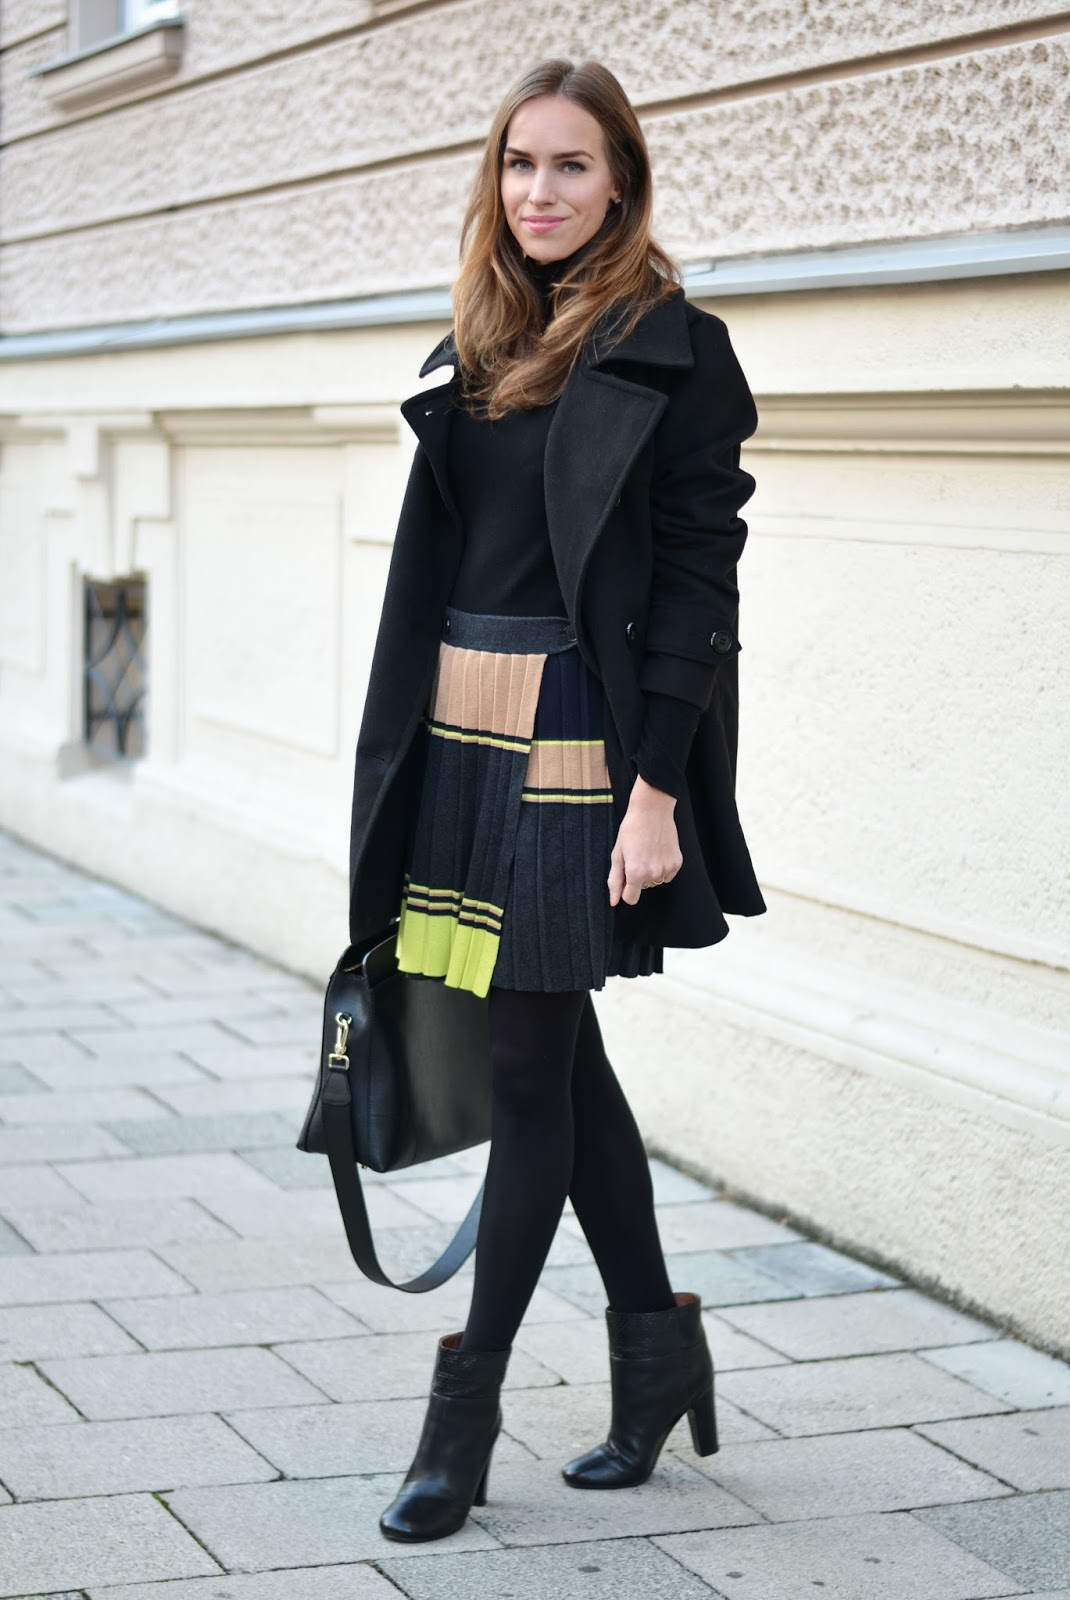 kristjaana mere pleated skirt peacoat heeled ankle boots winter outfit